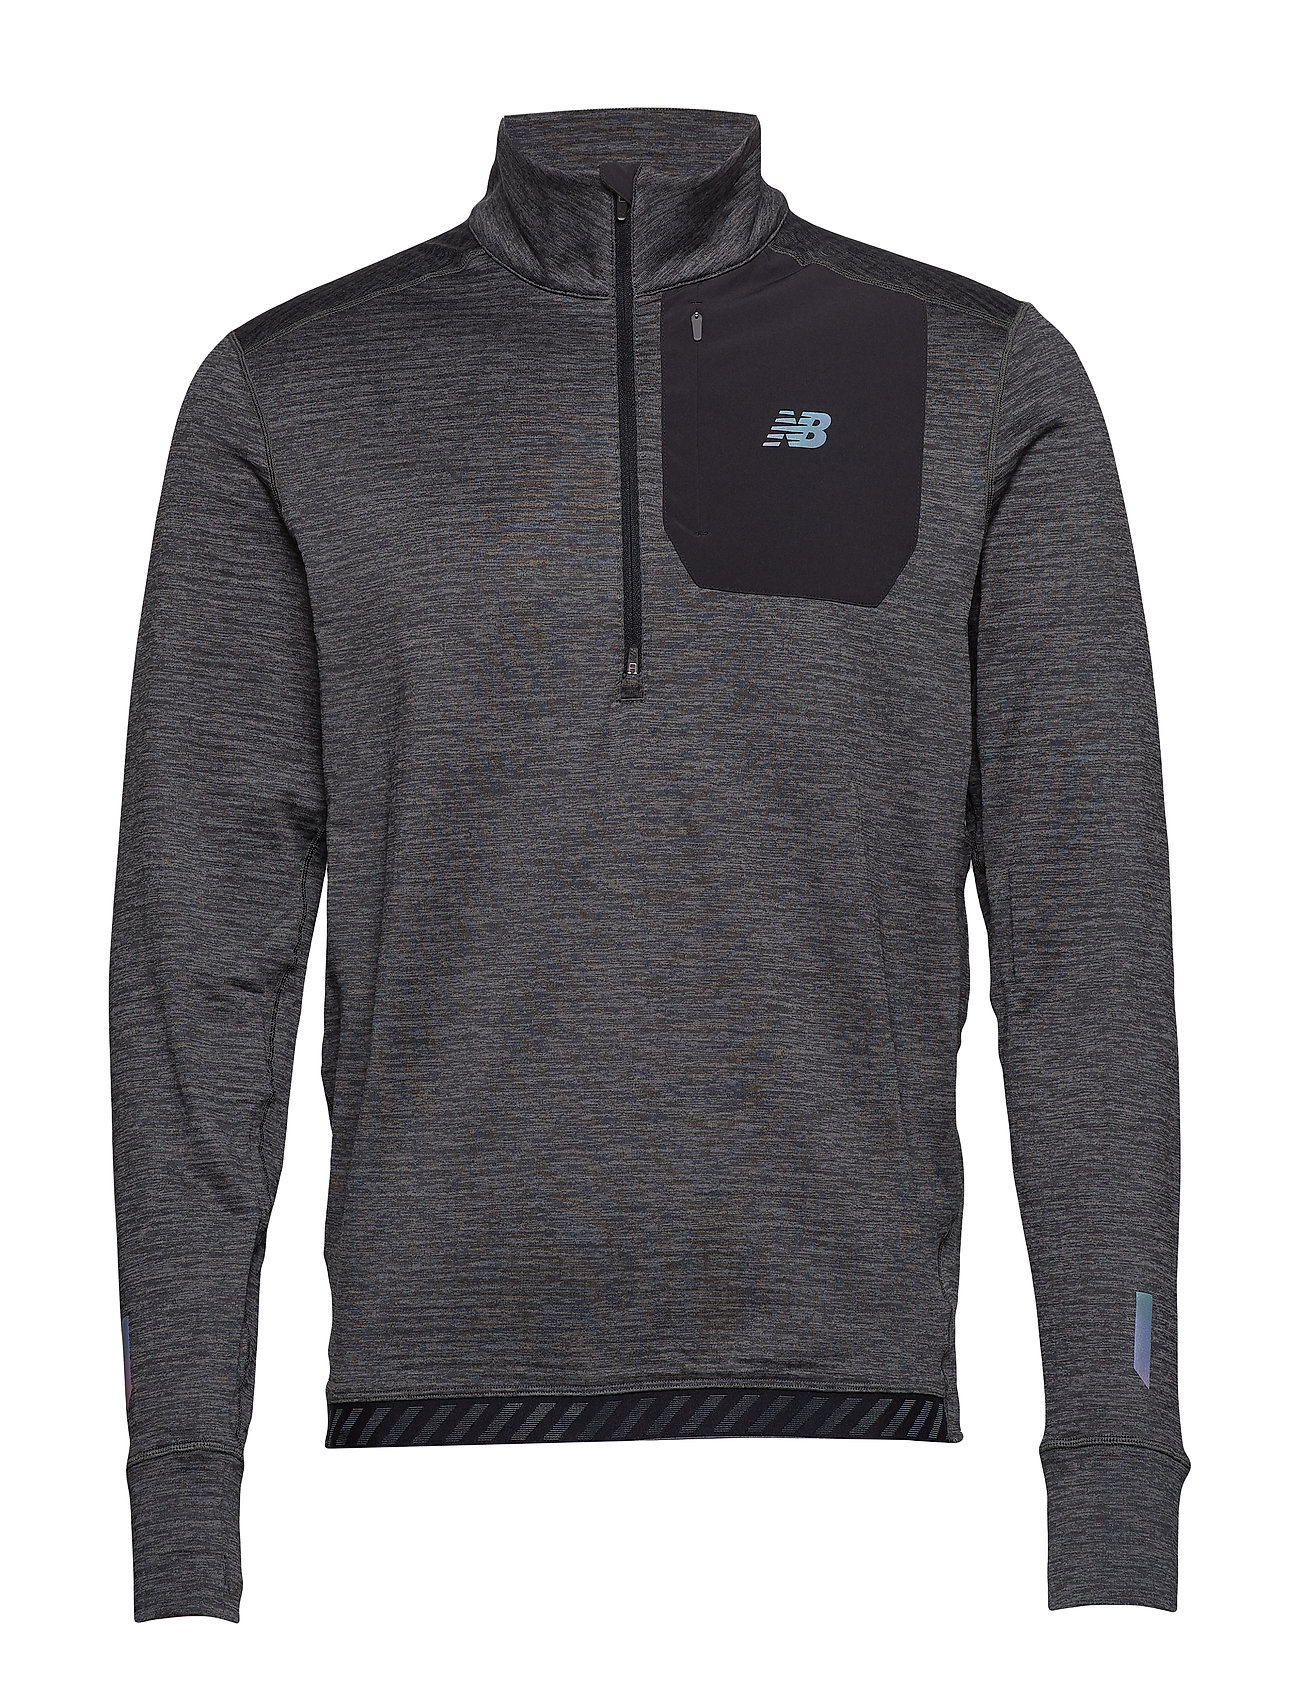 NEW BALANCE Nb Heat Qtr Zip Sweat-shirt Pullover Grau NEW BALANCE